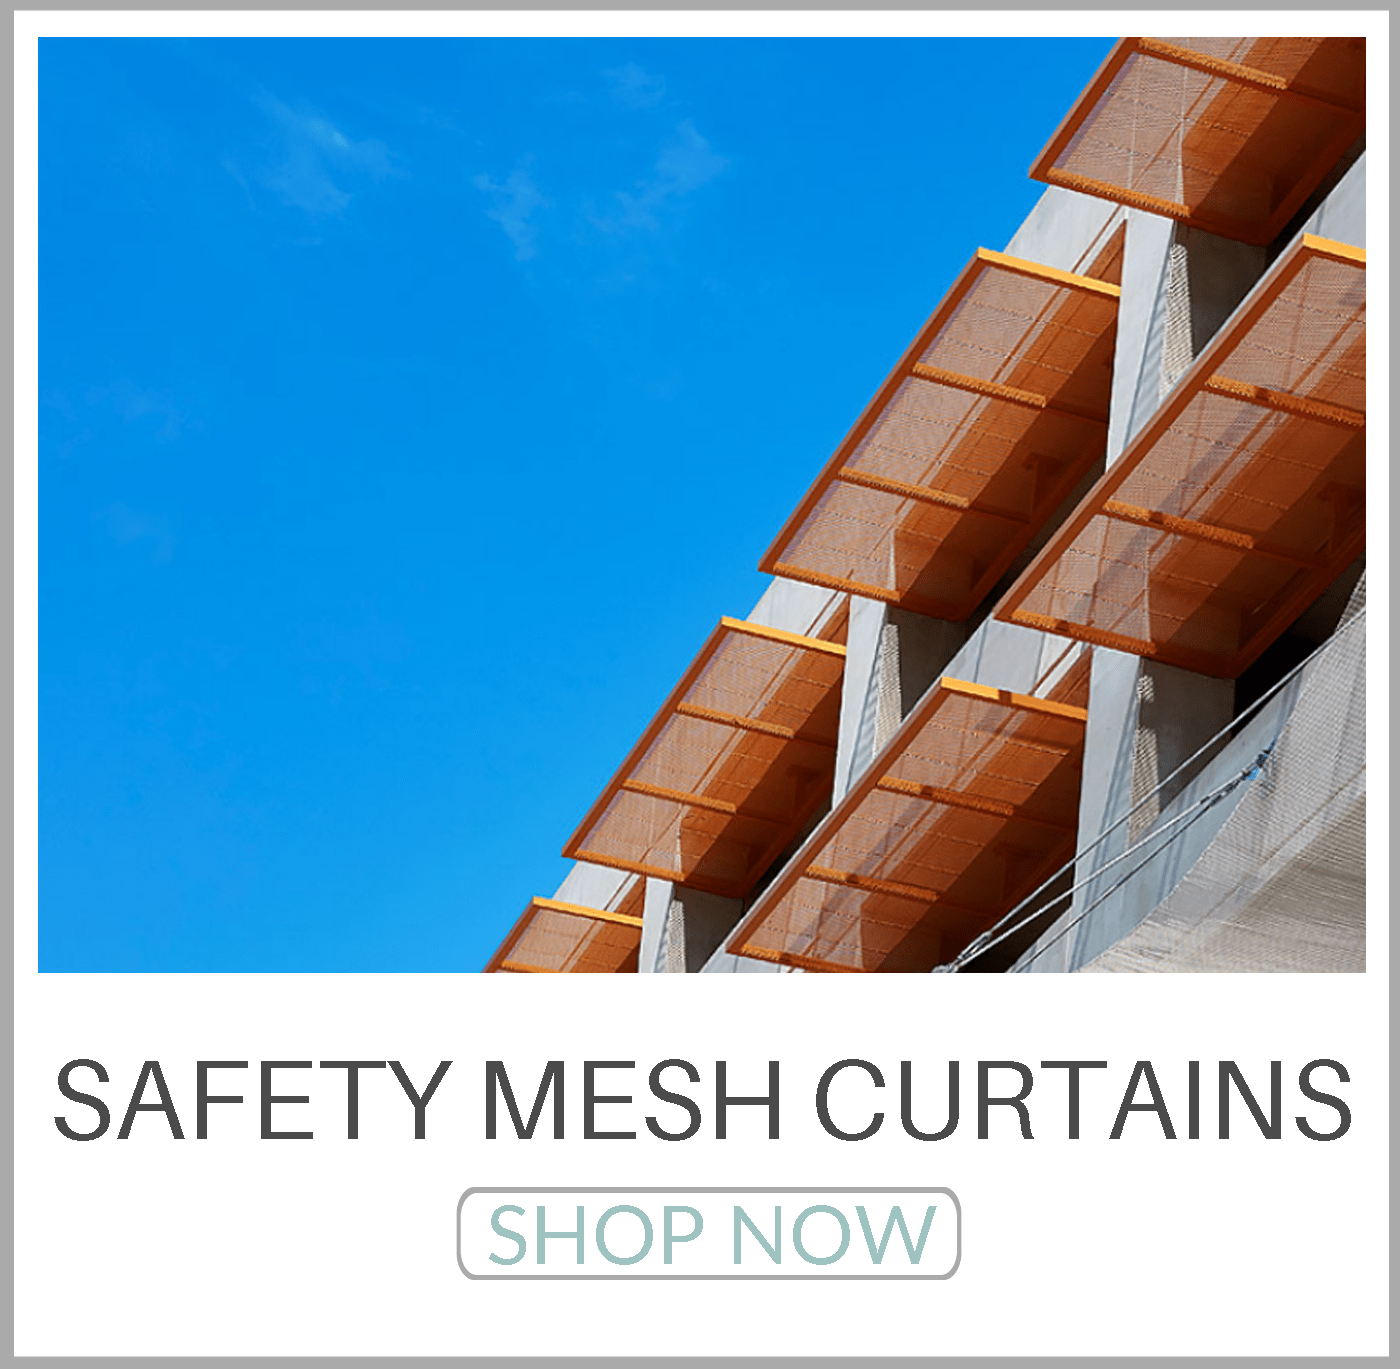 Show Safety and Security Mesh NOW